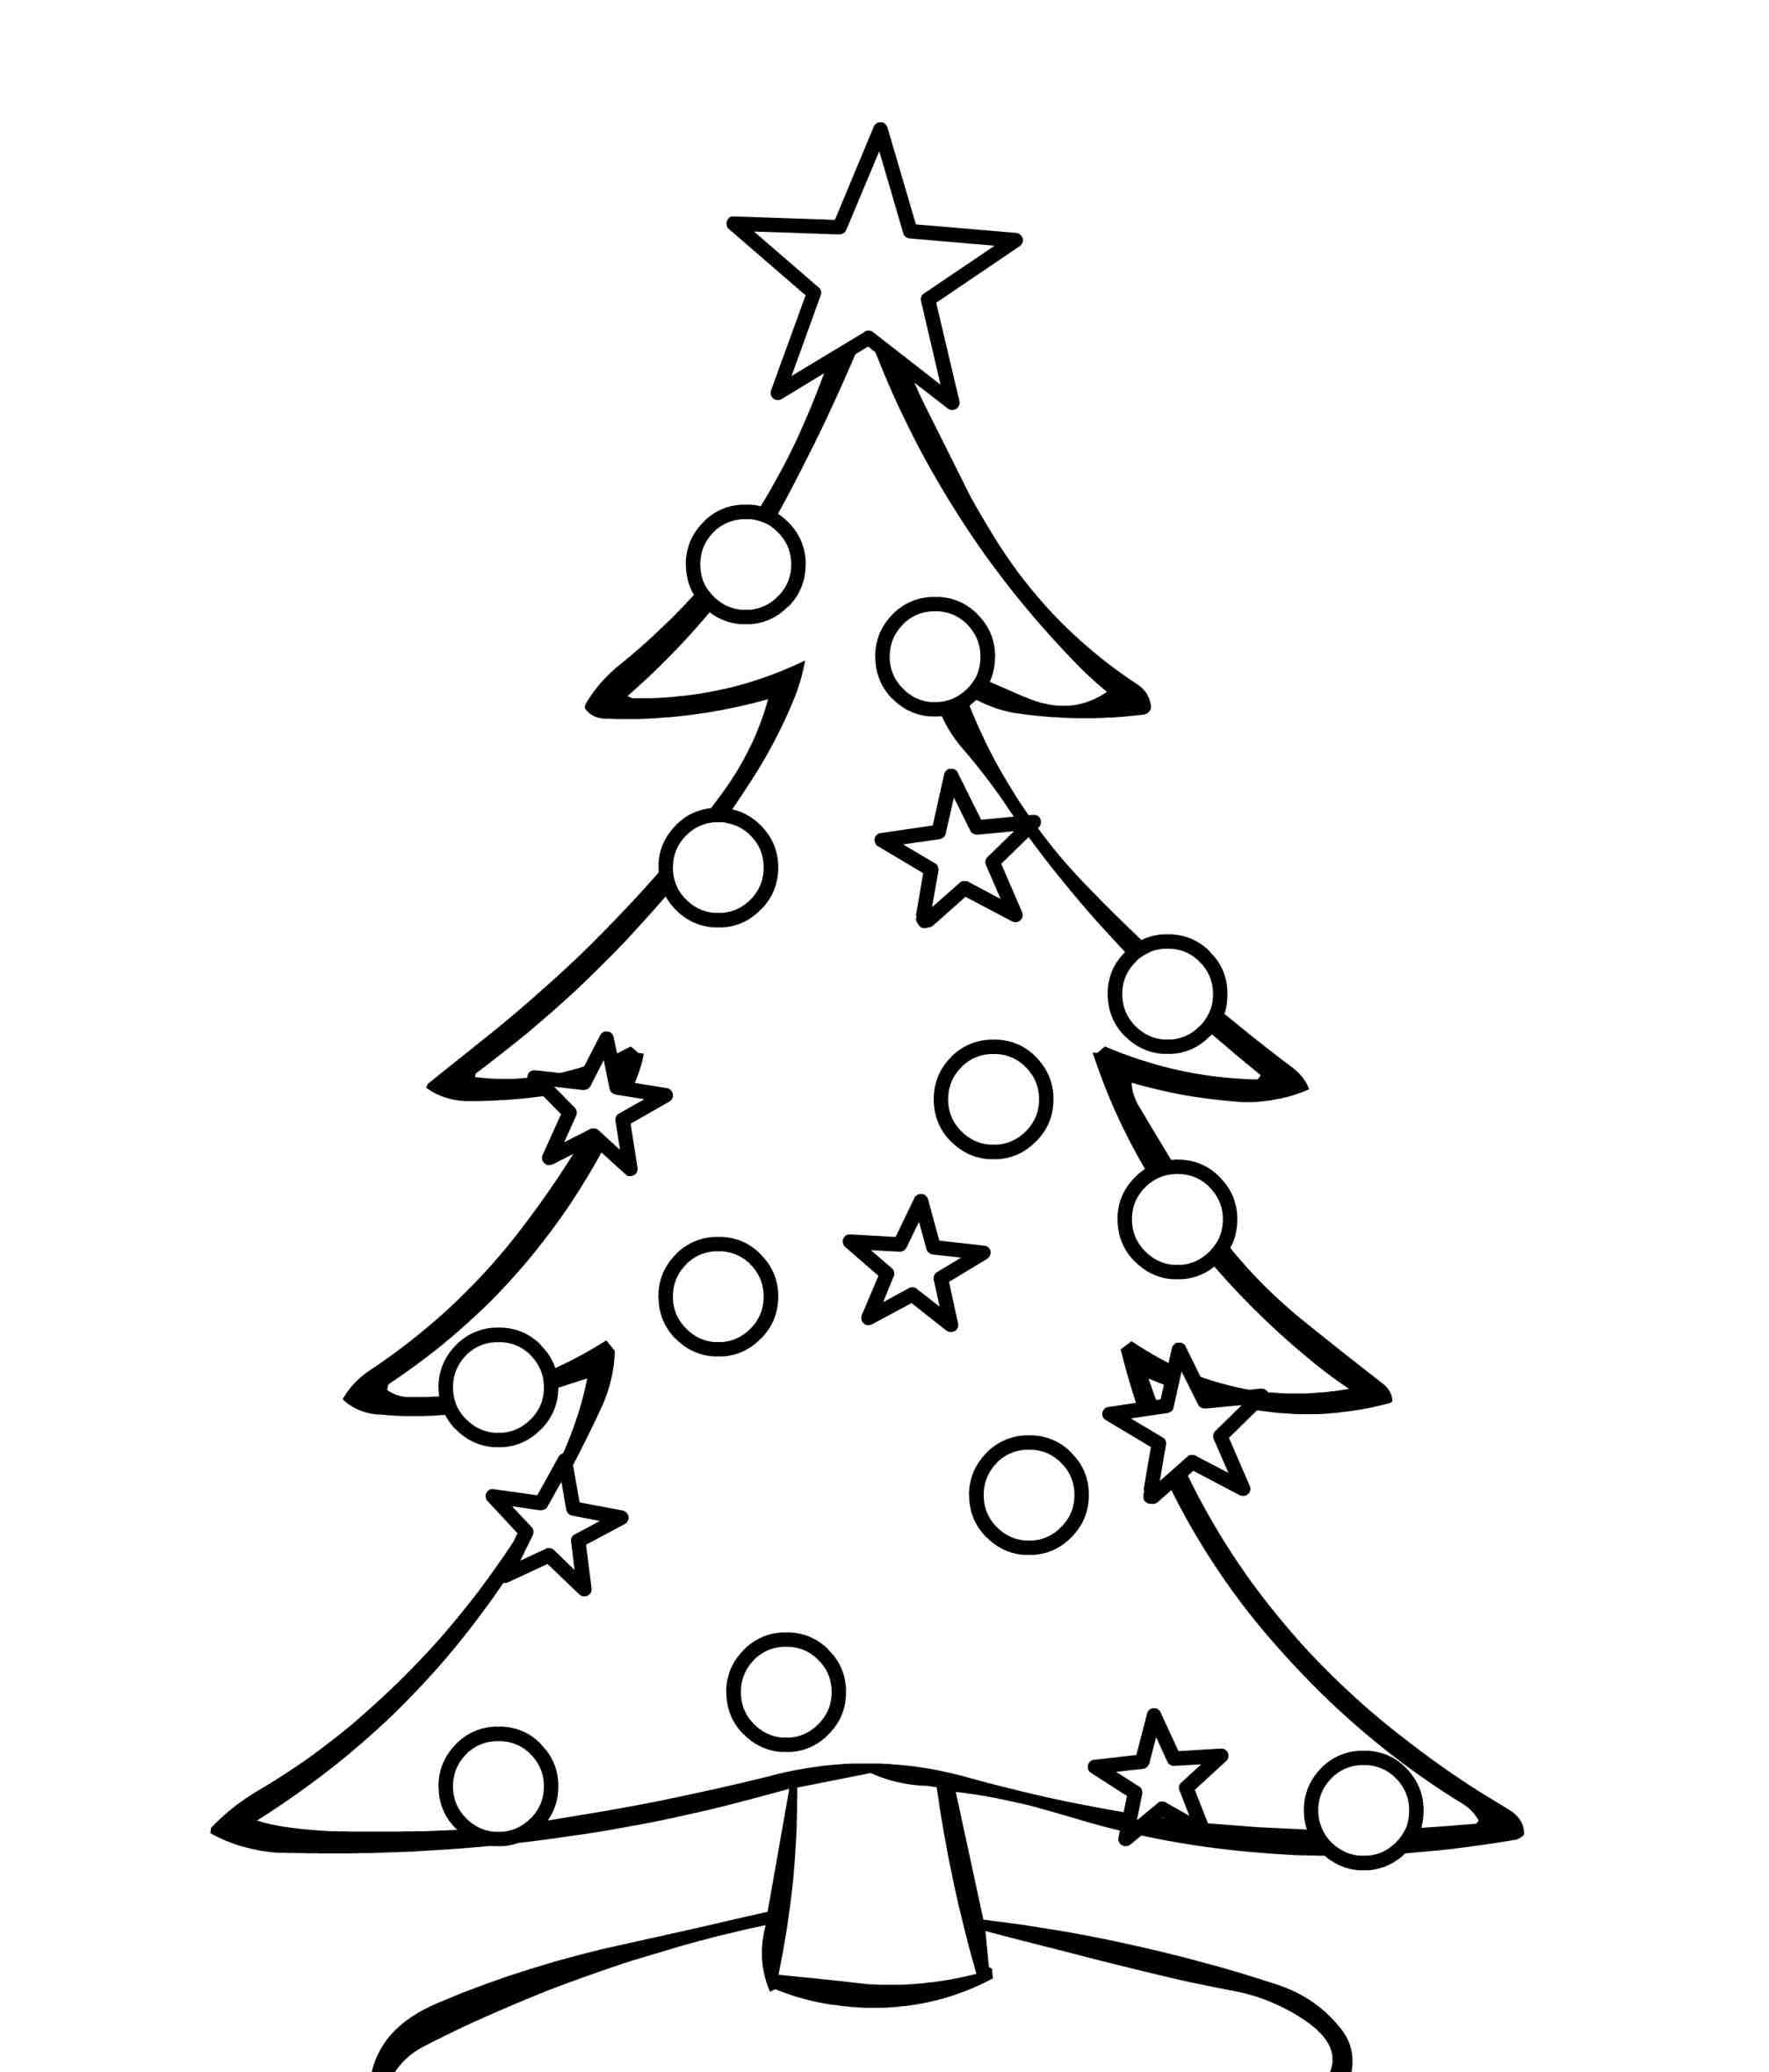 2014x2359 xmas tree drawing how to draw an easy christmas tree simple tree